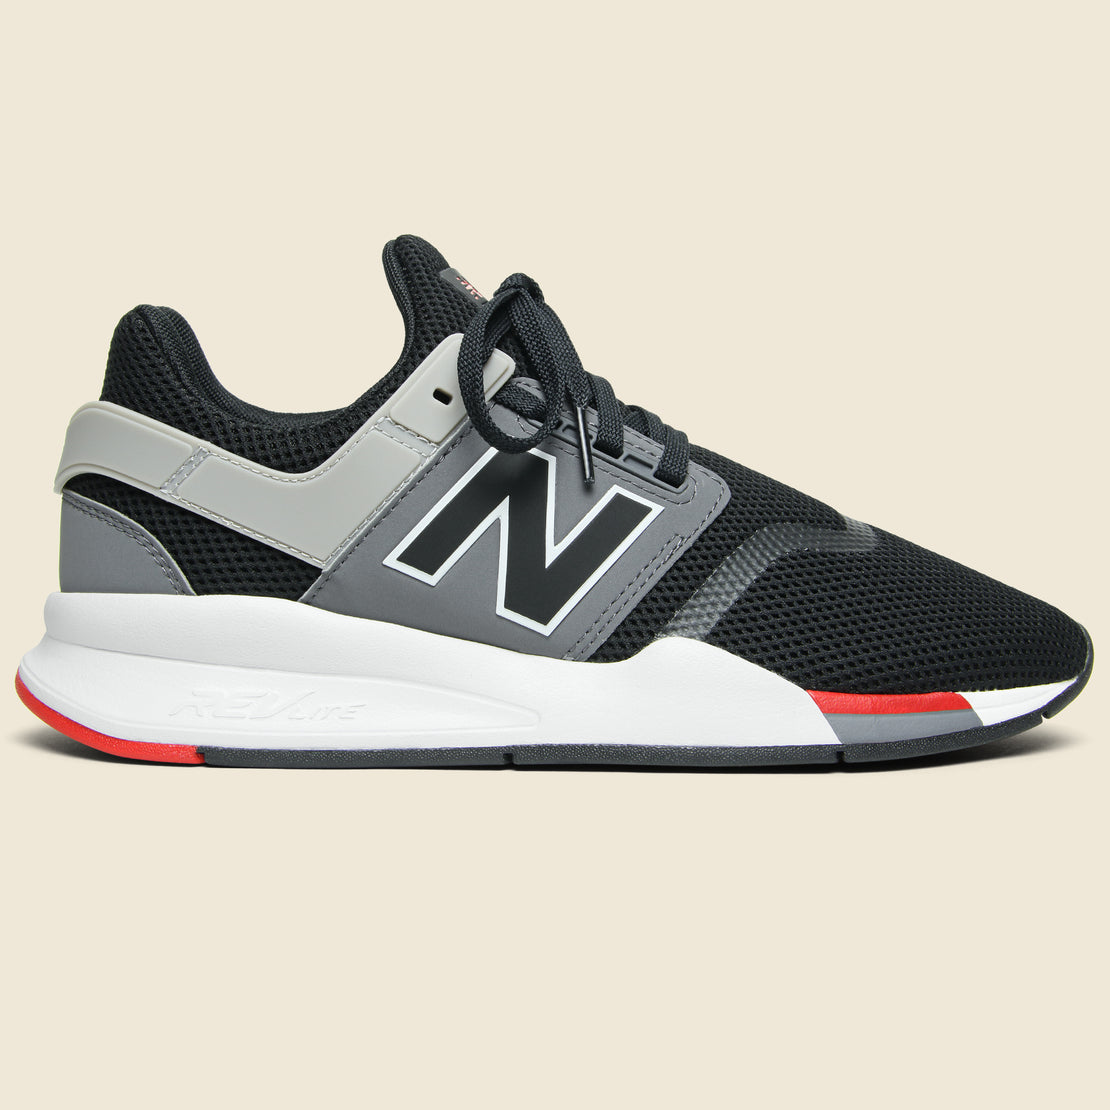 New Balance 247 V2 Sneaker - Black